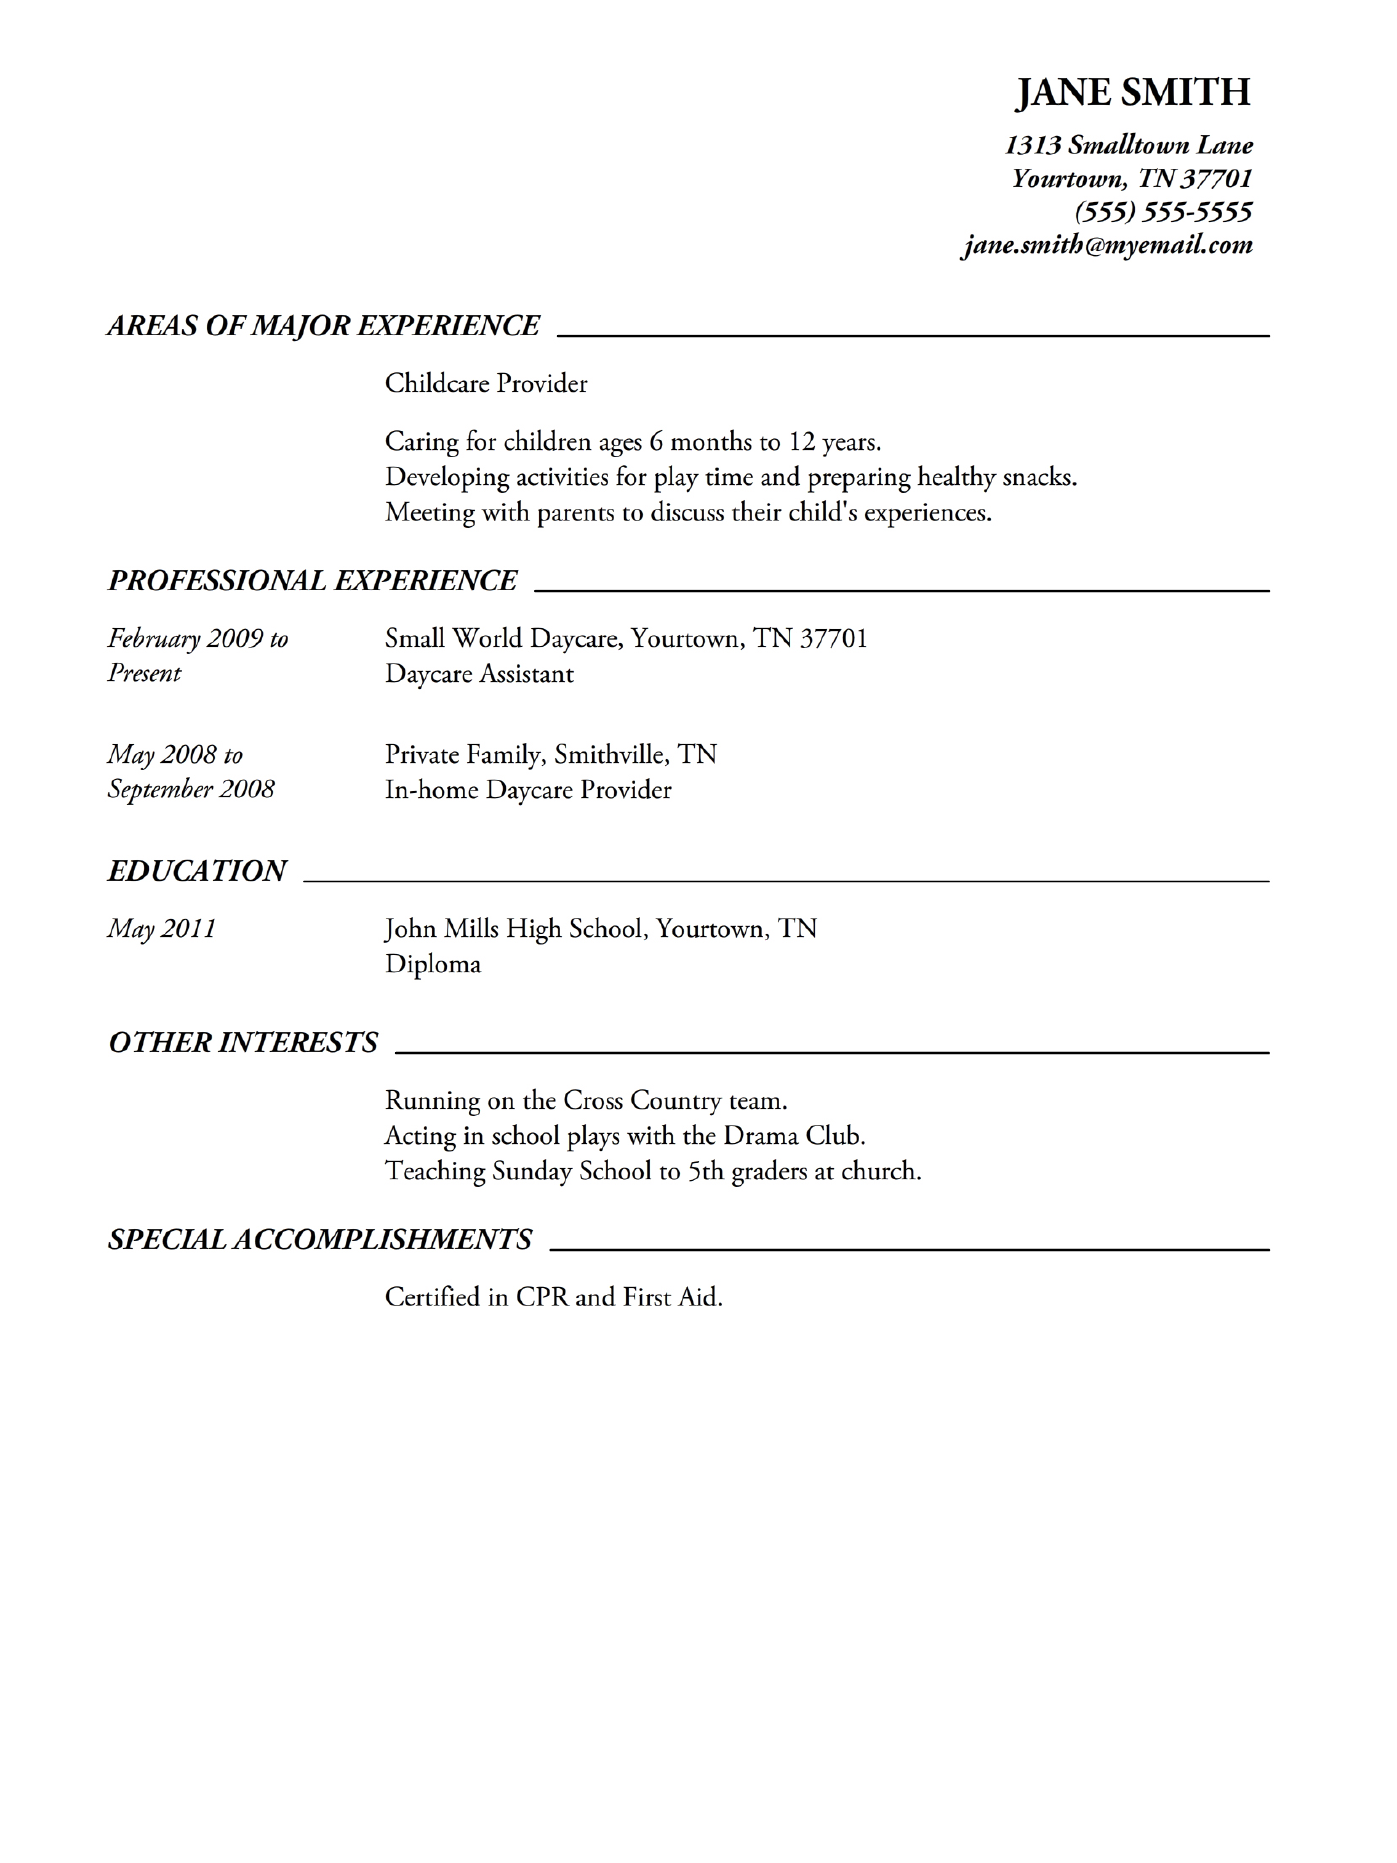 Sample High School Resumes And Cover Letters Free Download